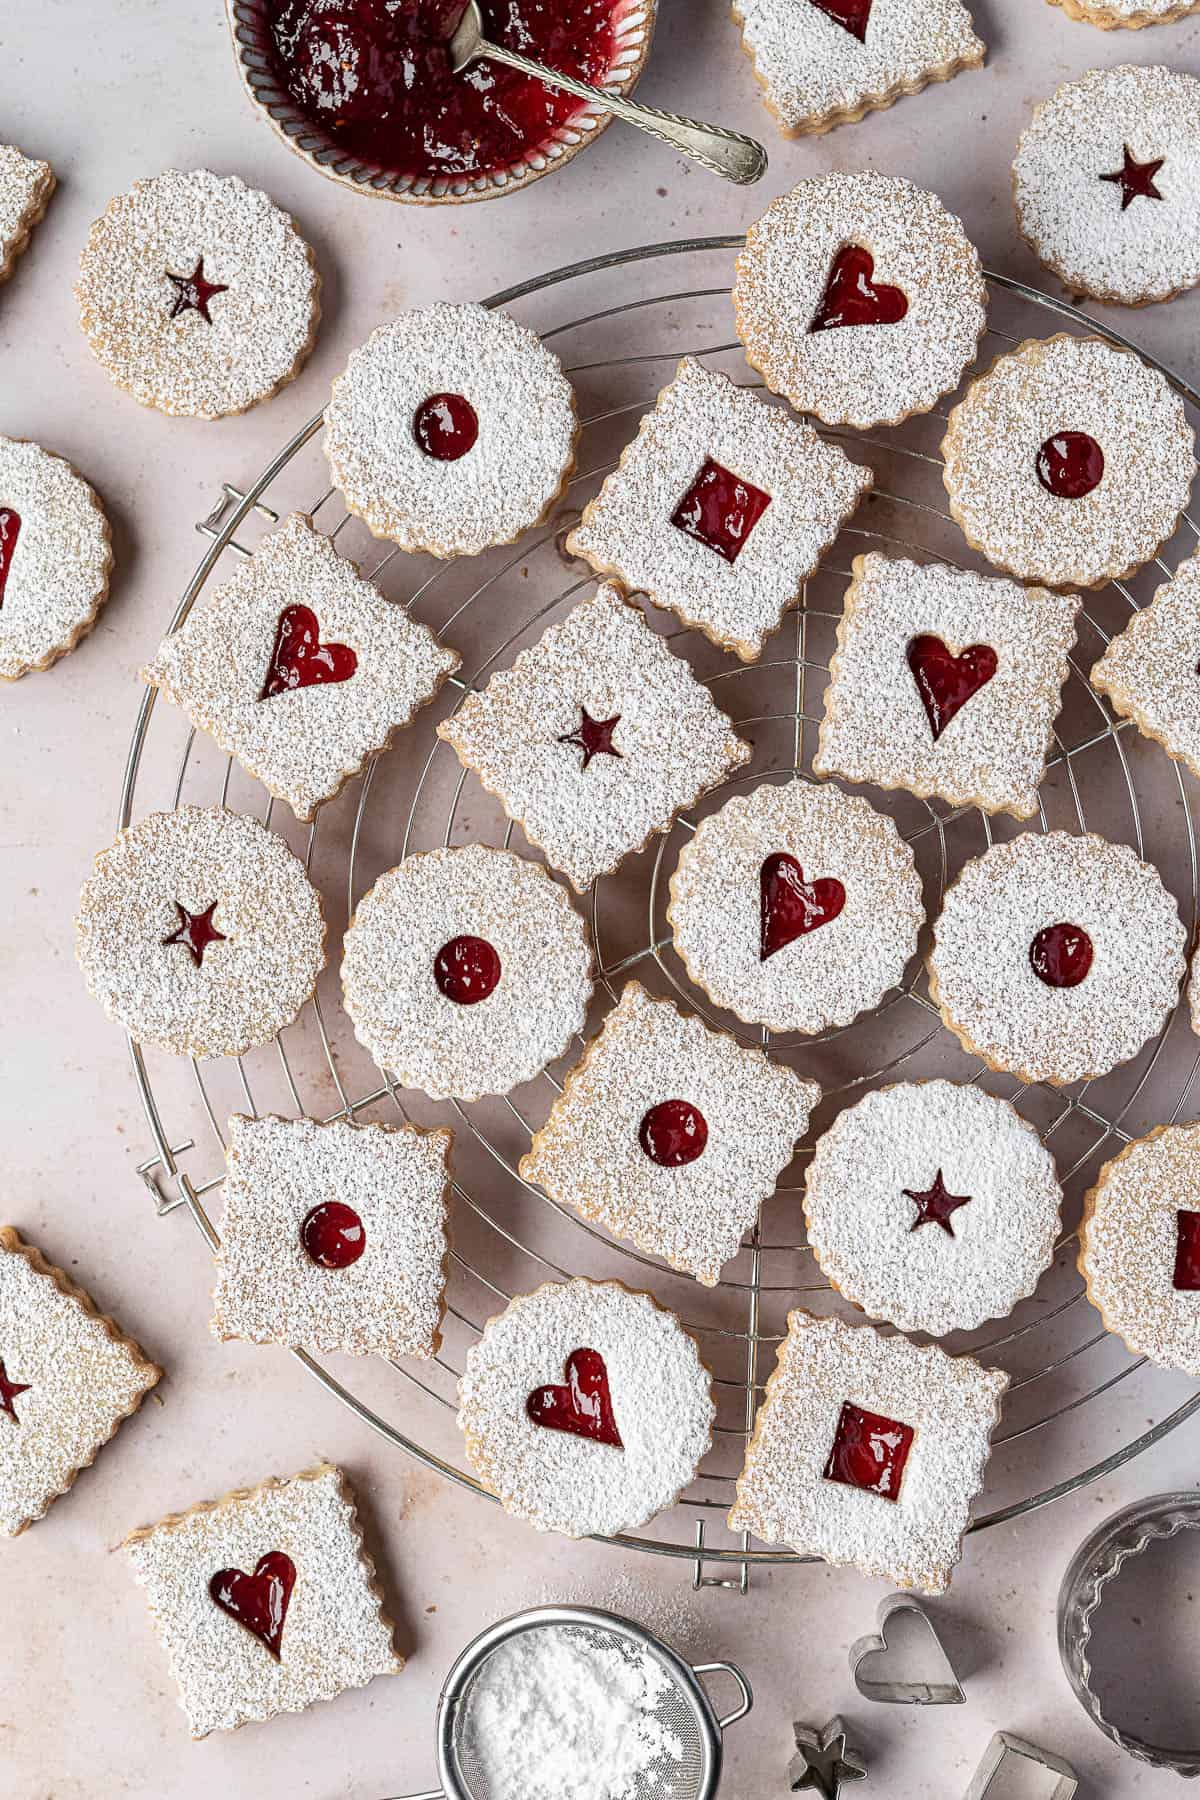 Vegan Linzer cookies on a round wire cooling rack with a bowl of jam, sieve of icing sugar and cookie cutters.